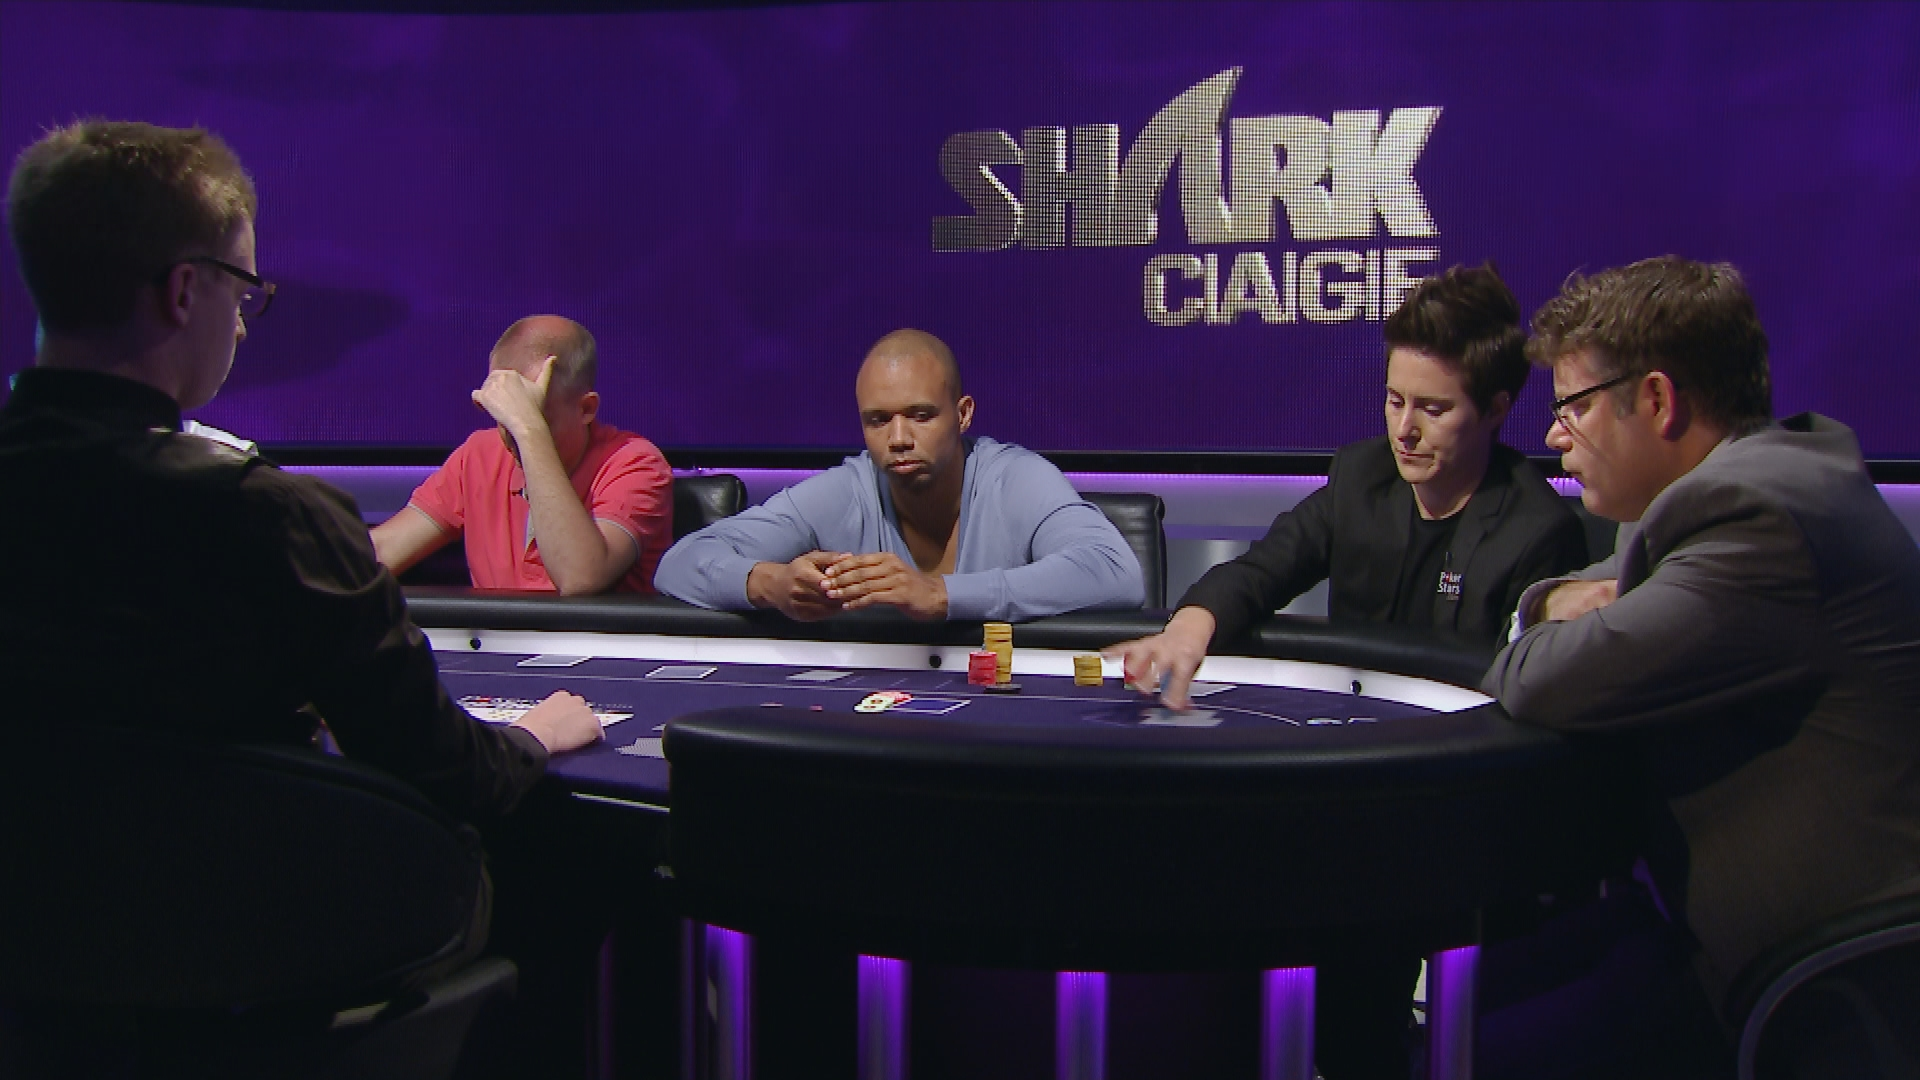 PokerStars Shark Cage, Season 2 - Episode 12